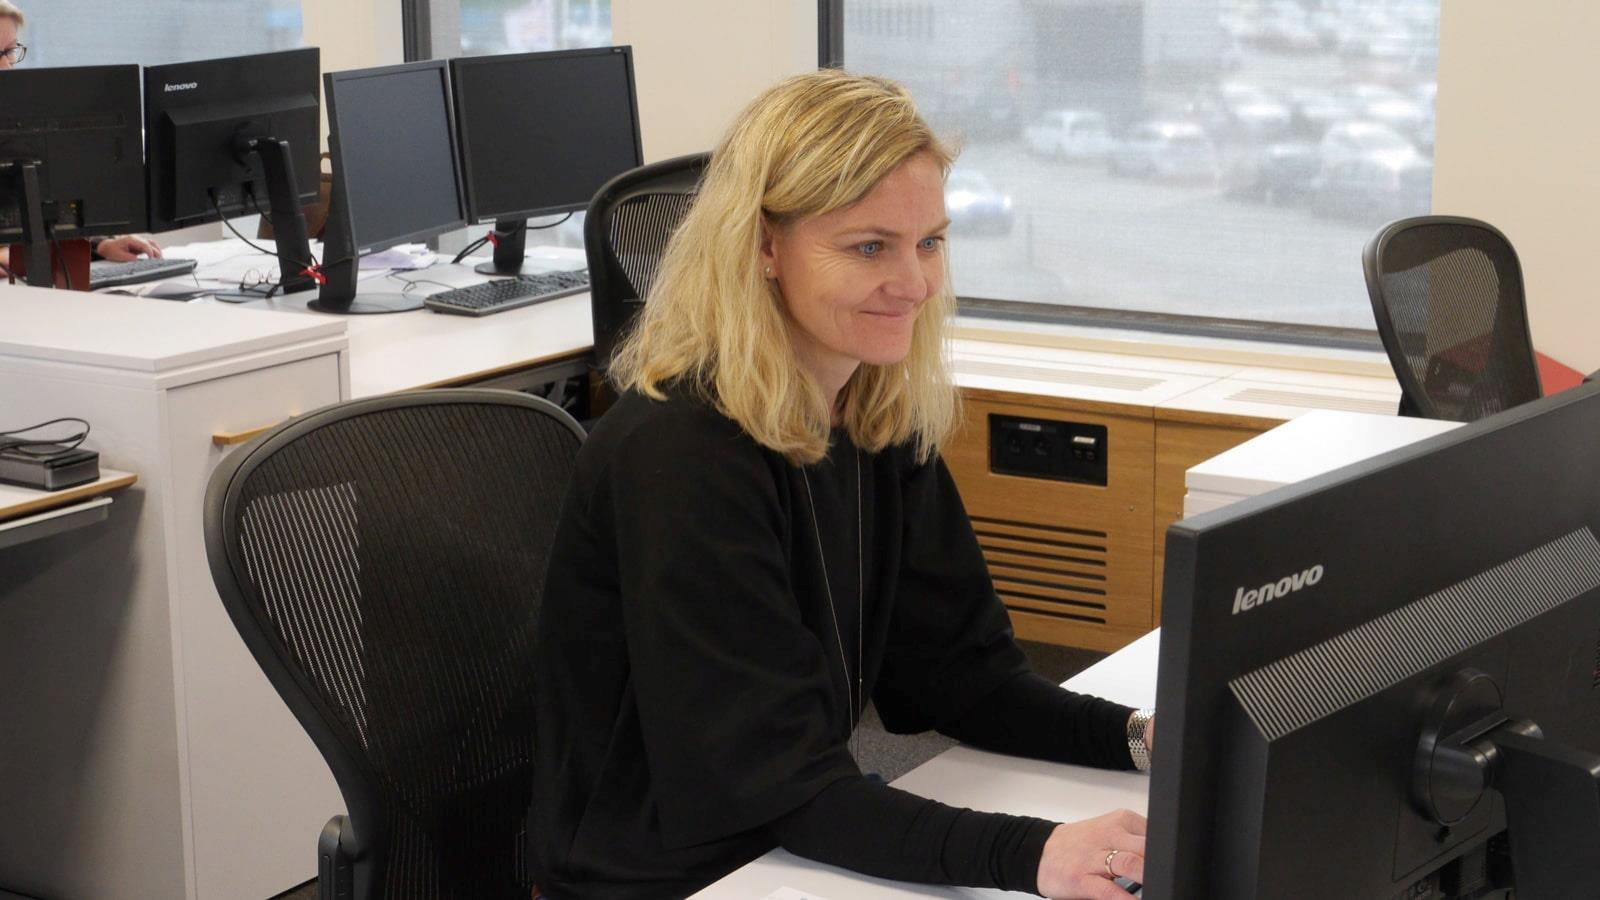 Blonde woman working at computer